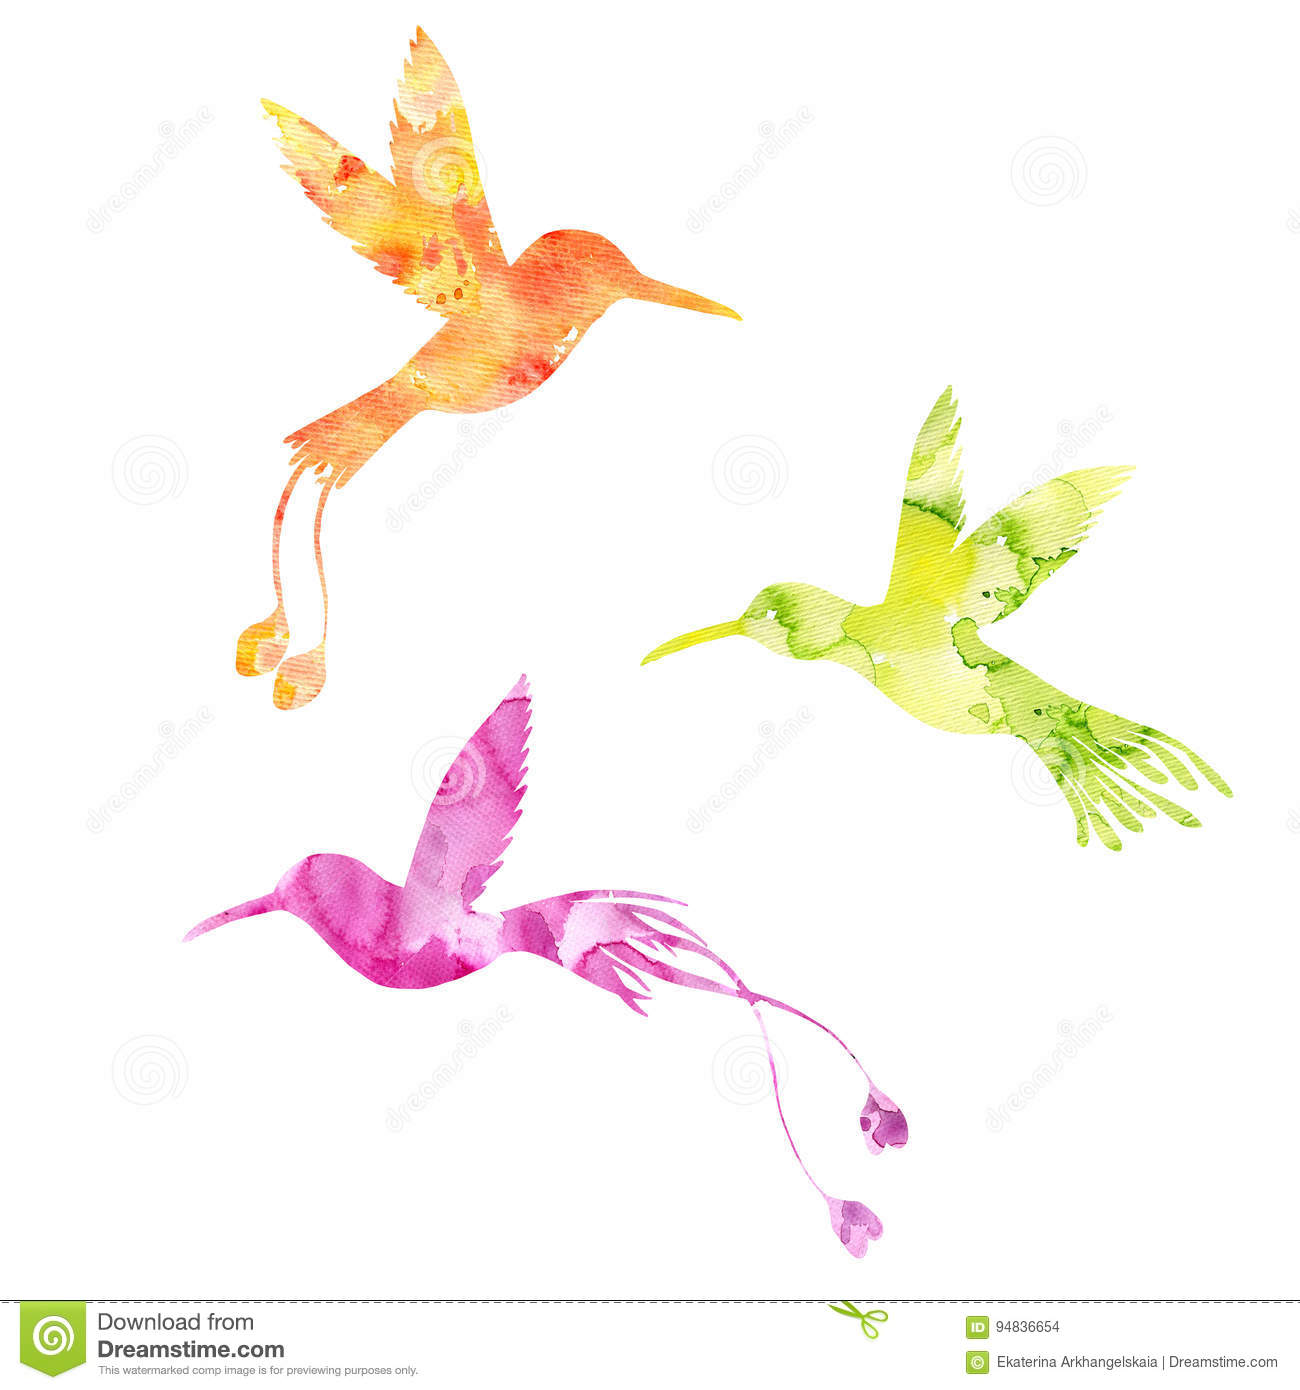 Pdf Case 990 Tractor Starter Switch Wiring Diagram Hummingbird Watercolor Bird Illustration Hand Drawn Stock Auto Rh Kitchat Me